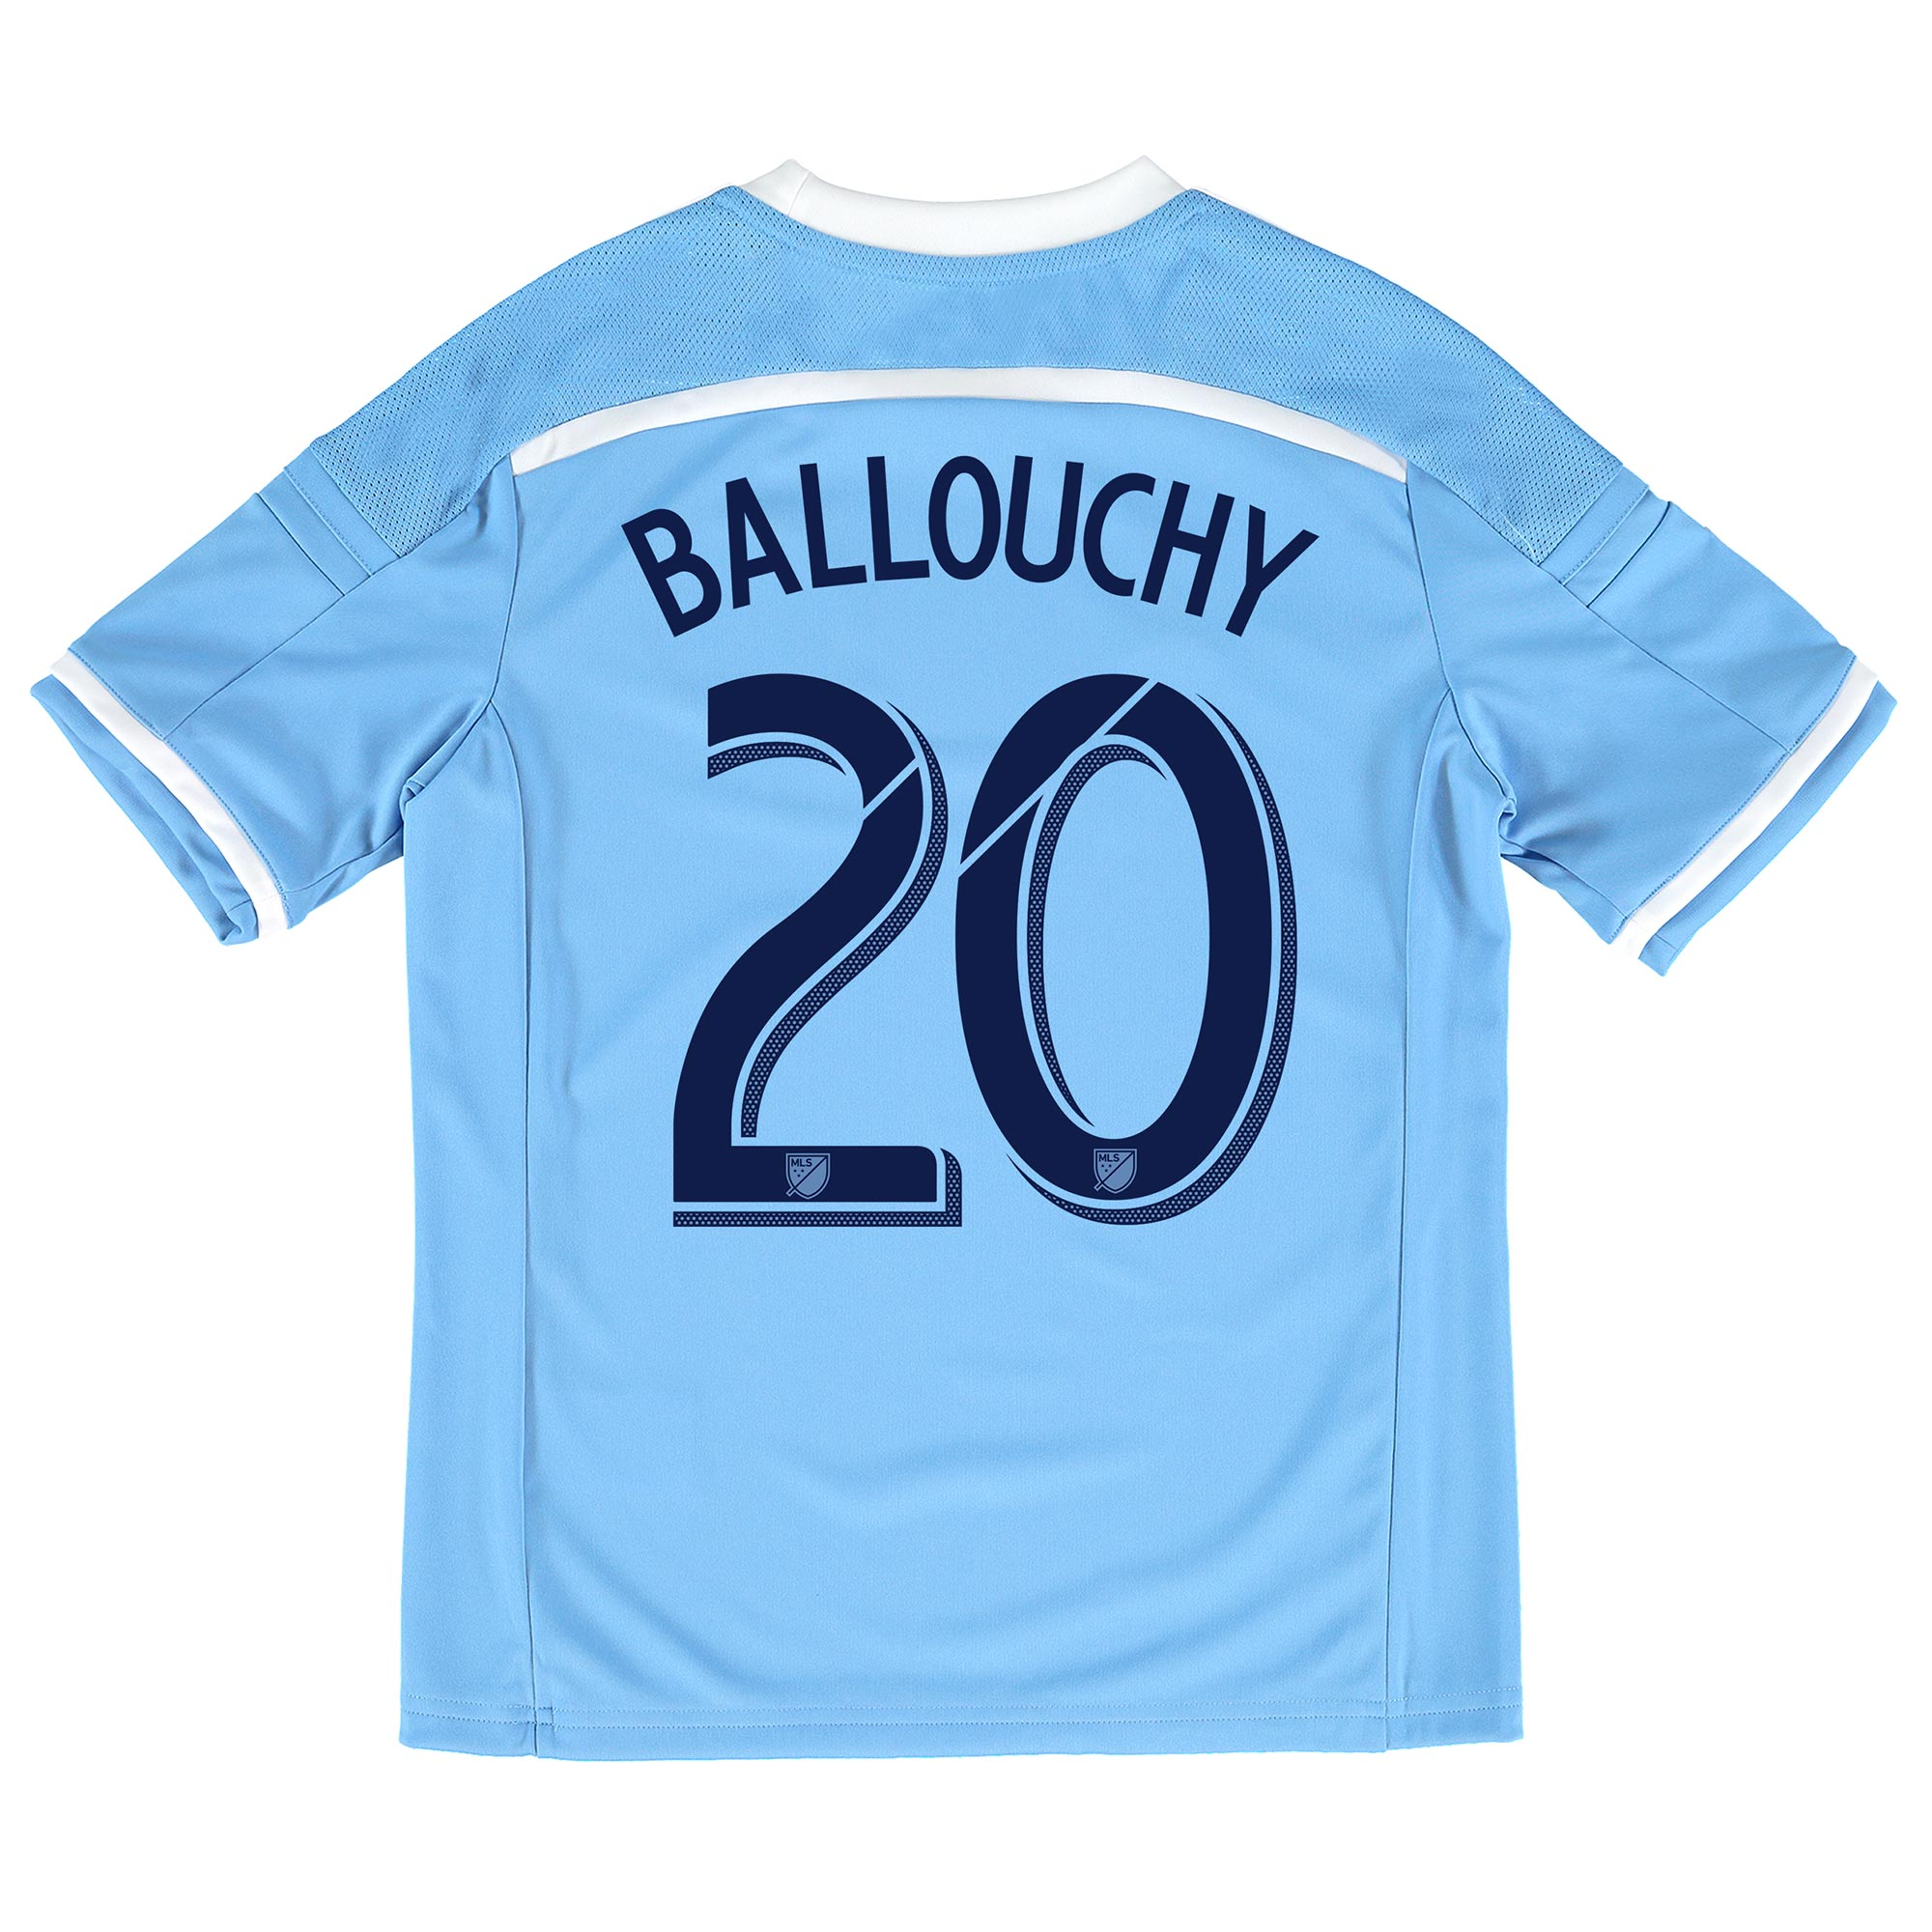 New York City FC Home Shirt 2015-16 - Kids with Ballouchy 20 printing